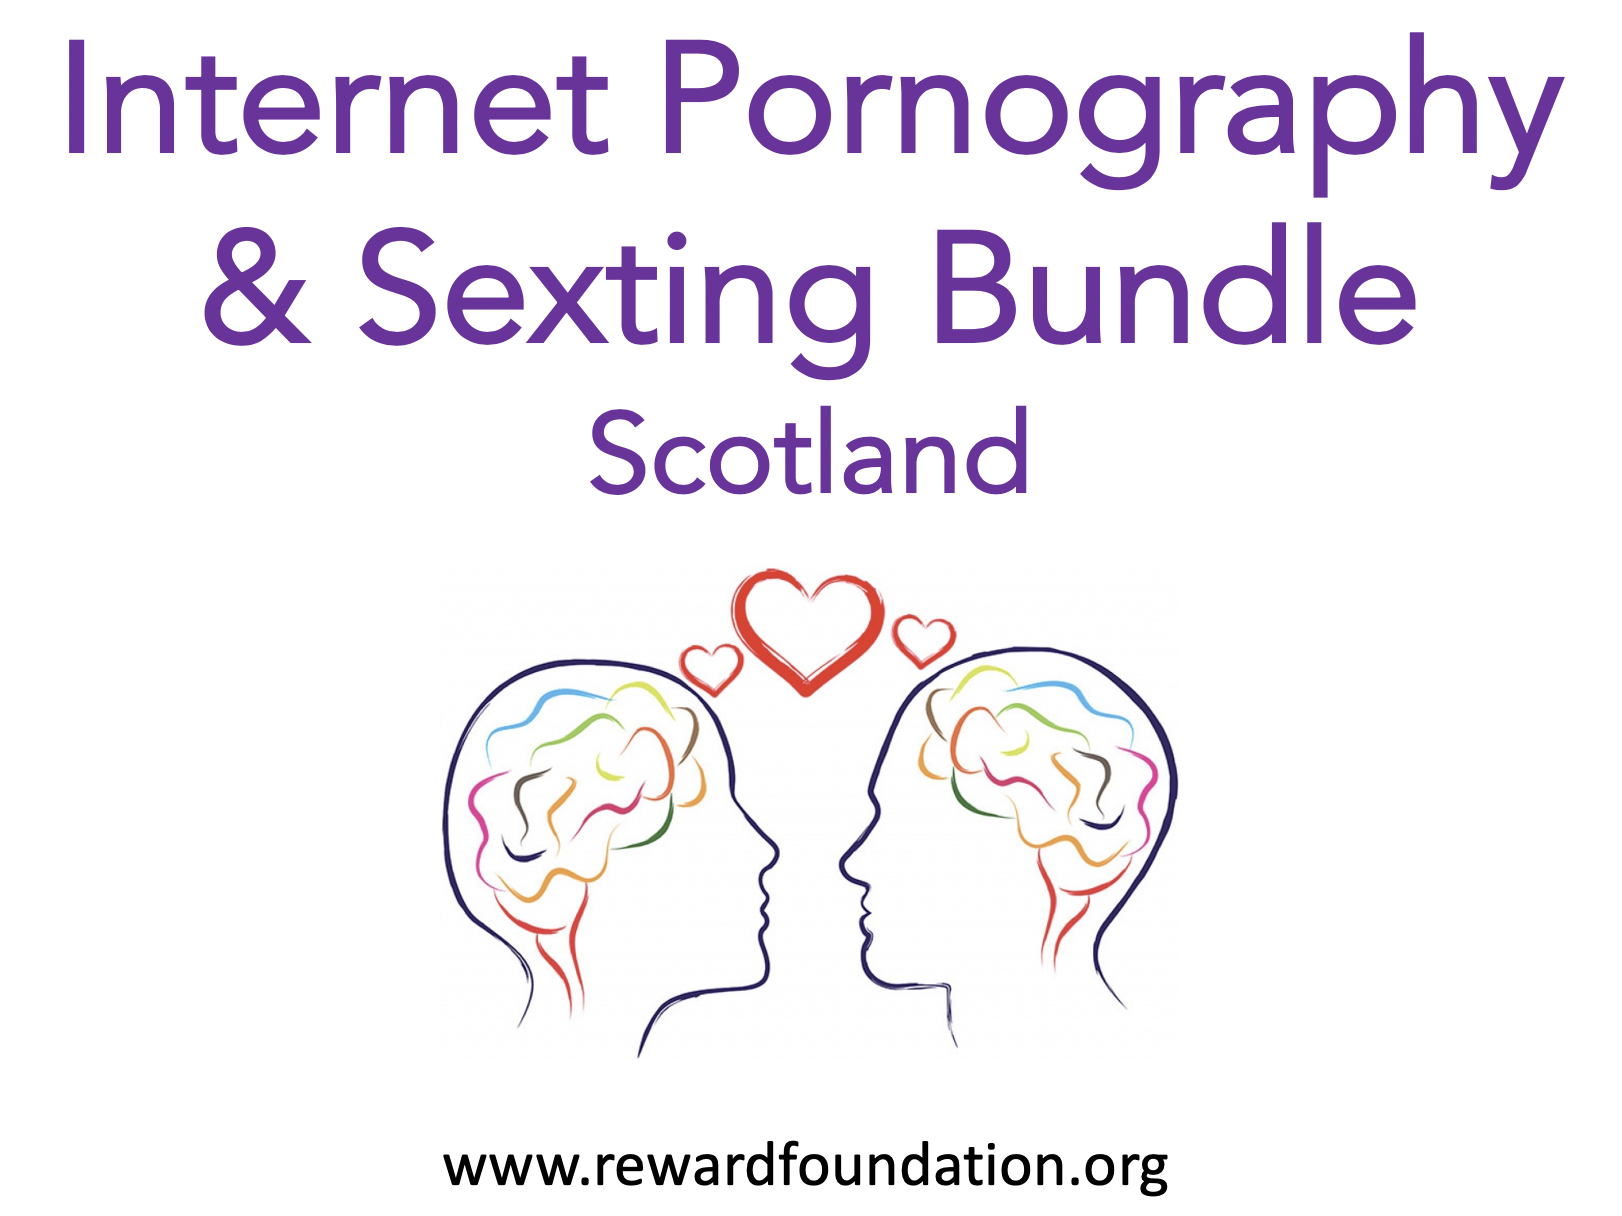 Internet Pornography and Sexting Bundle Scotland